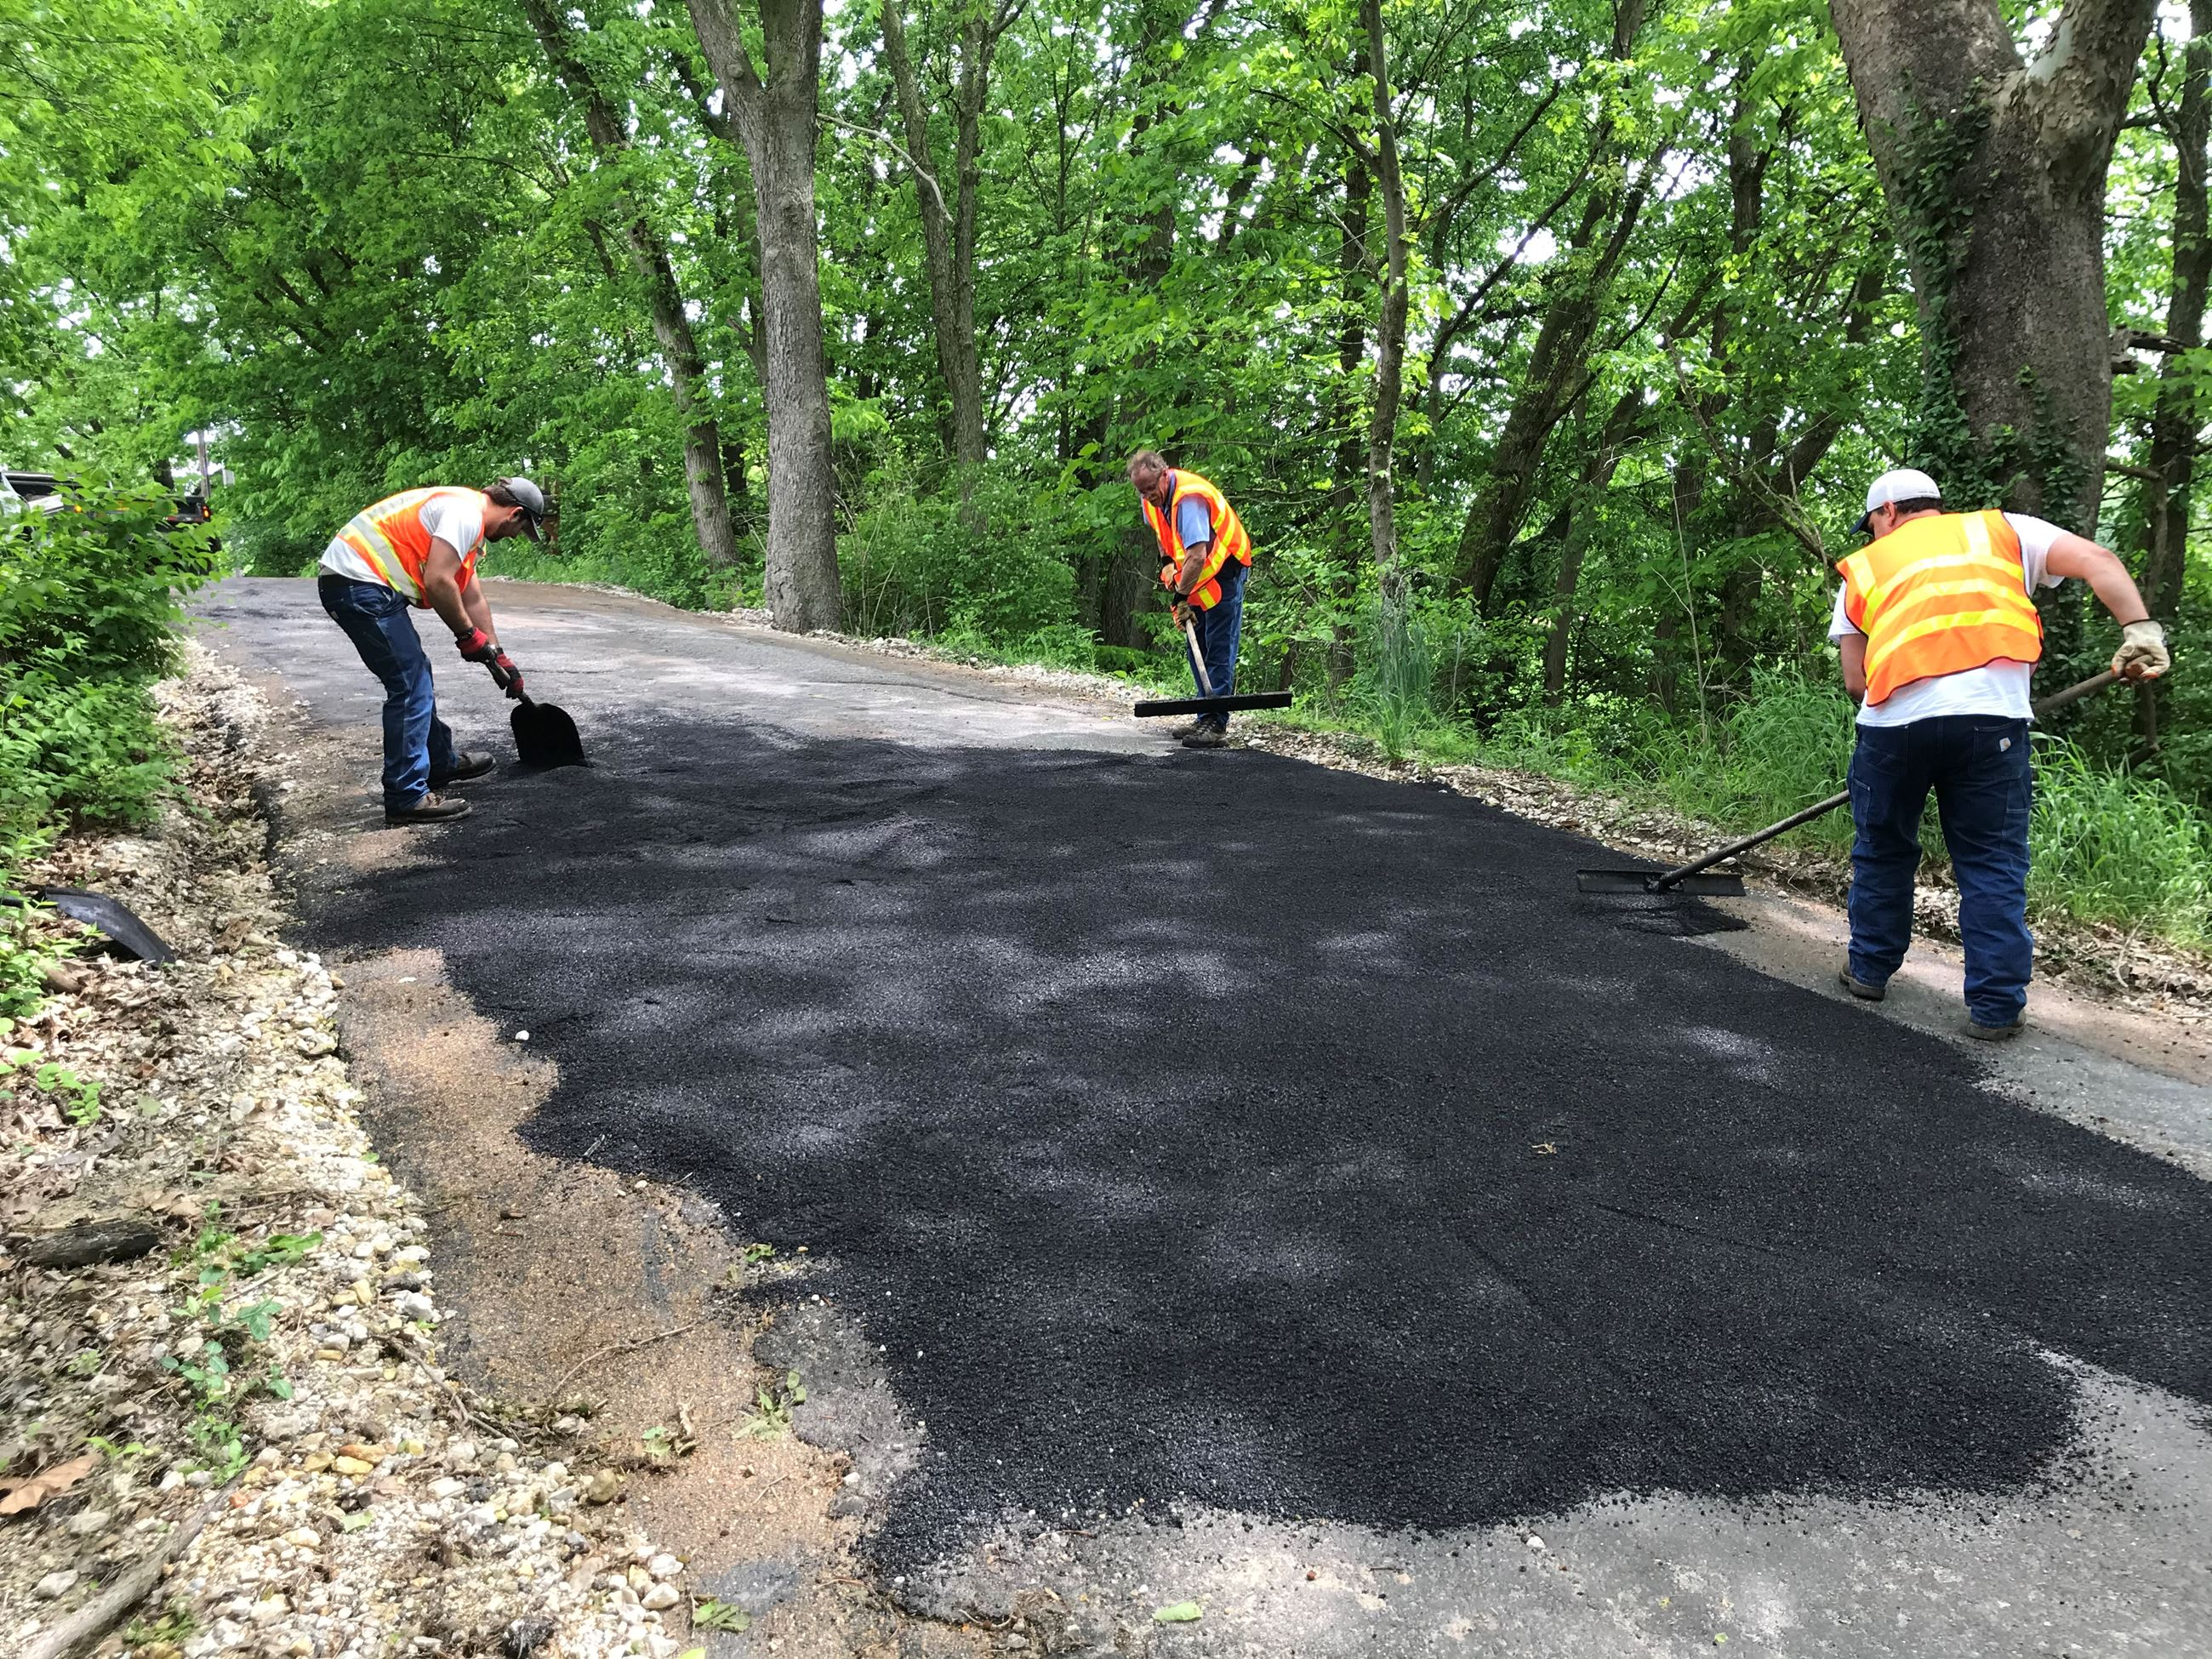 Worker putting final touches on roadway patch